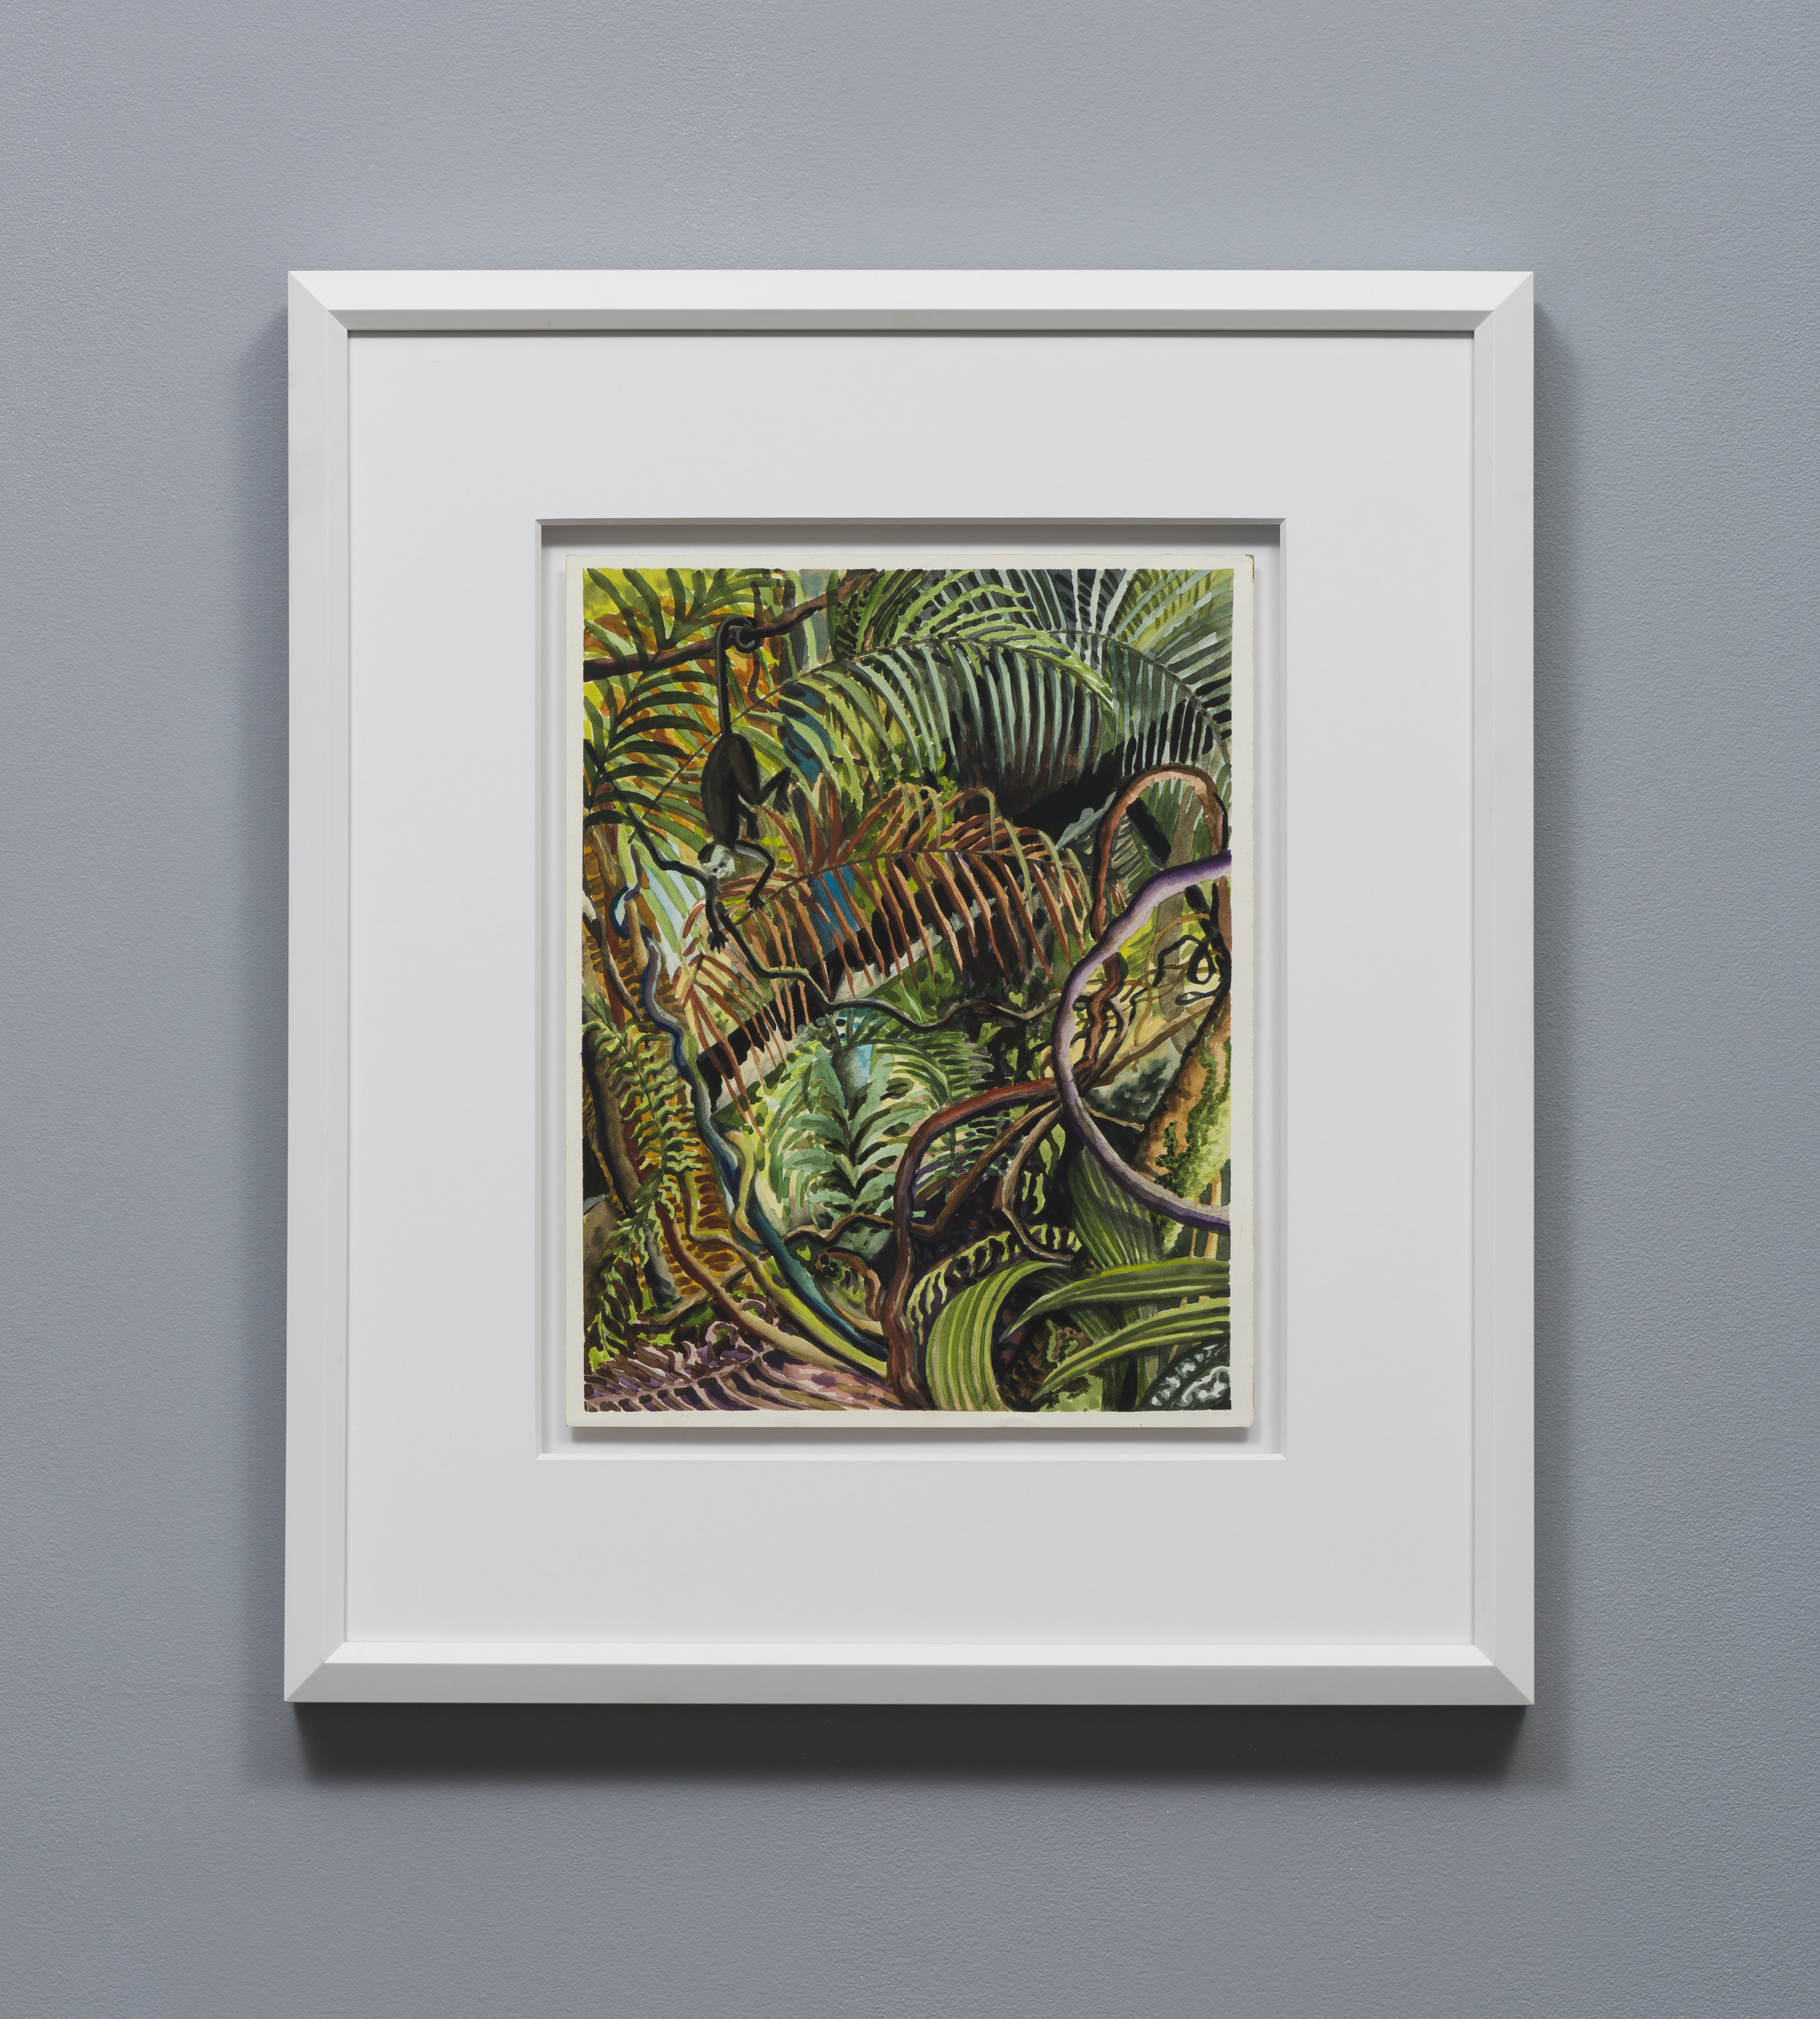 Suzan Pitt  Dense Jungle     1989 Watercolor on paper 14.75 x 11.5 inches, 24.5 x 21 inches framed